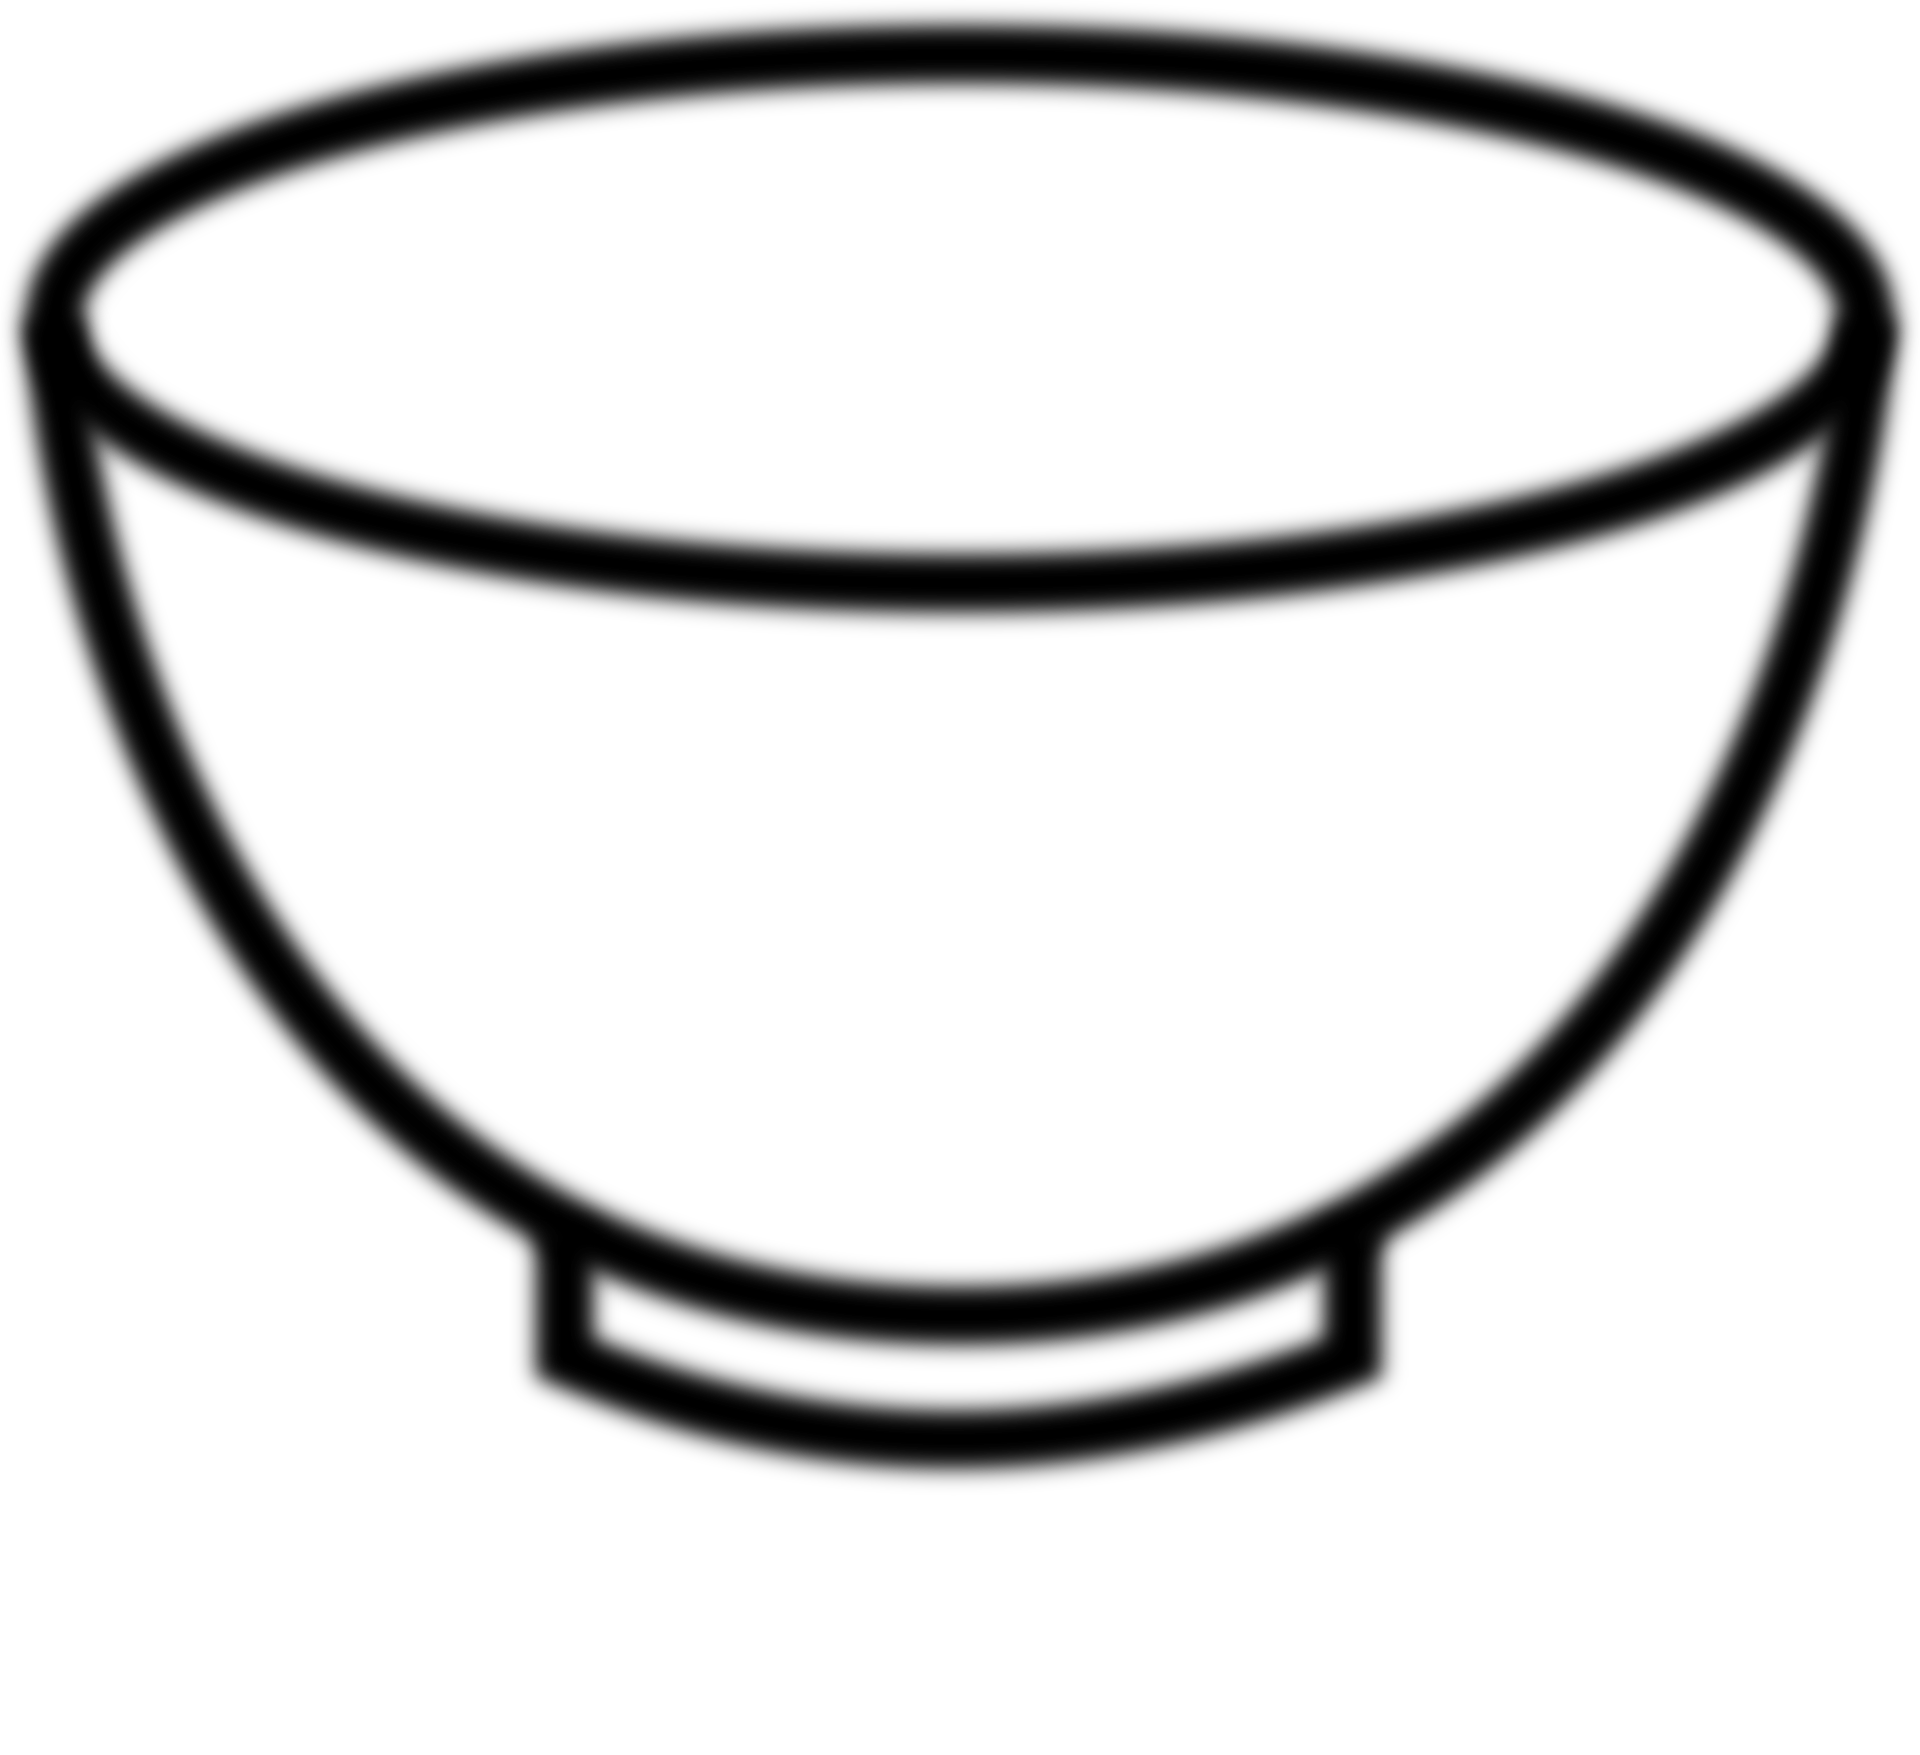 Empty Soup Black And White Soup Bowl Clipart Free Image